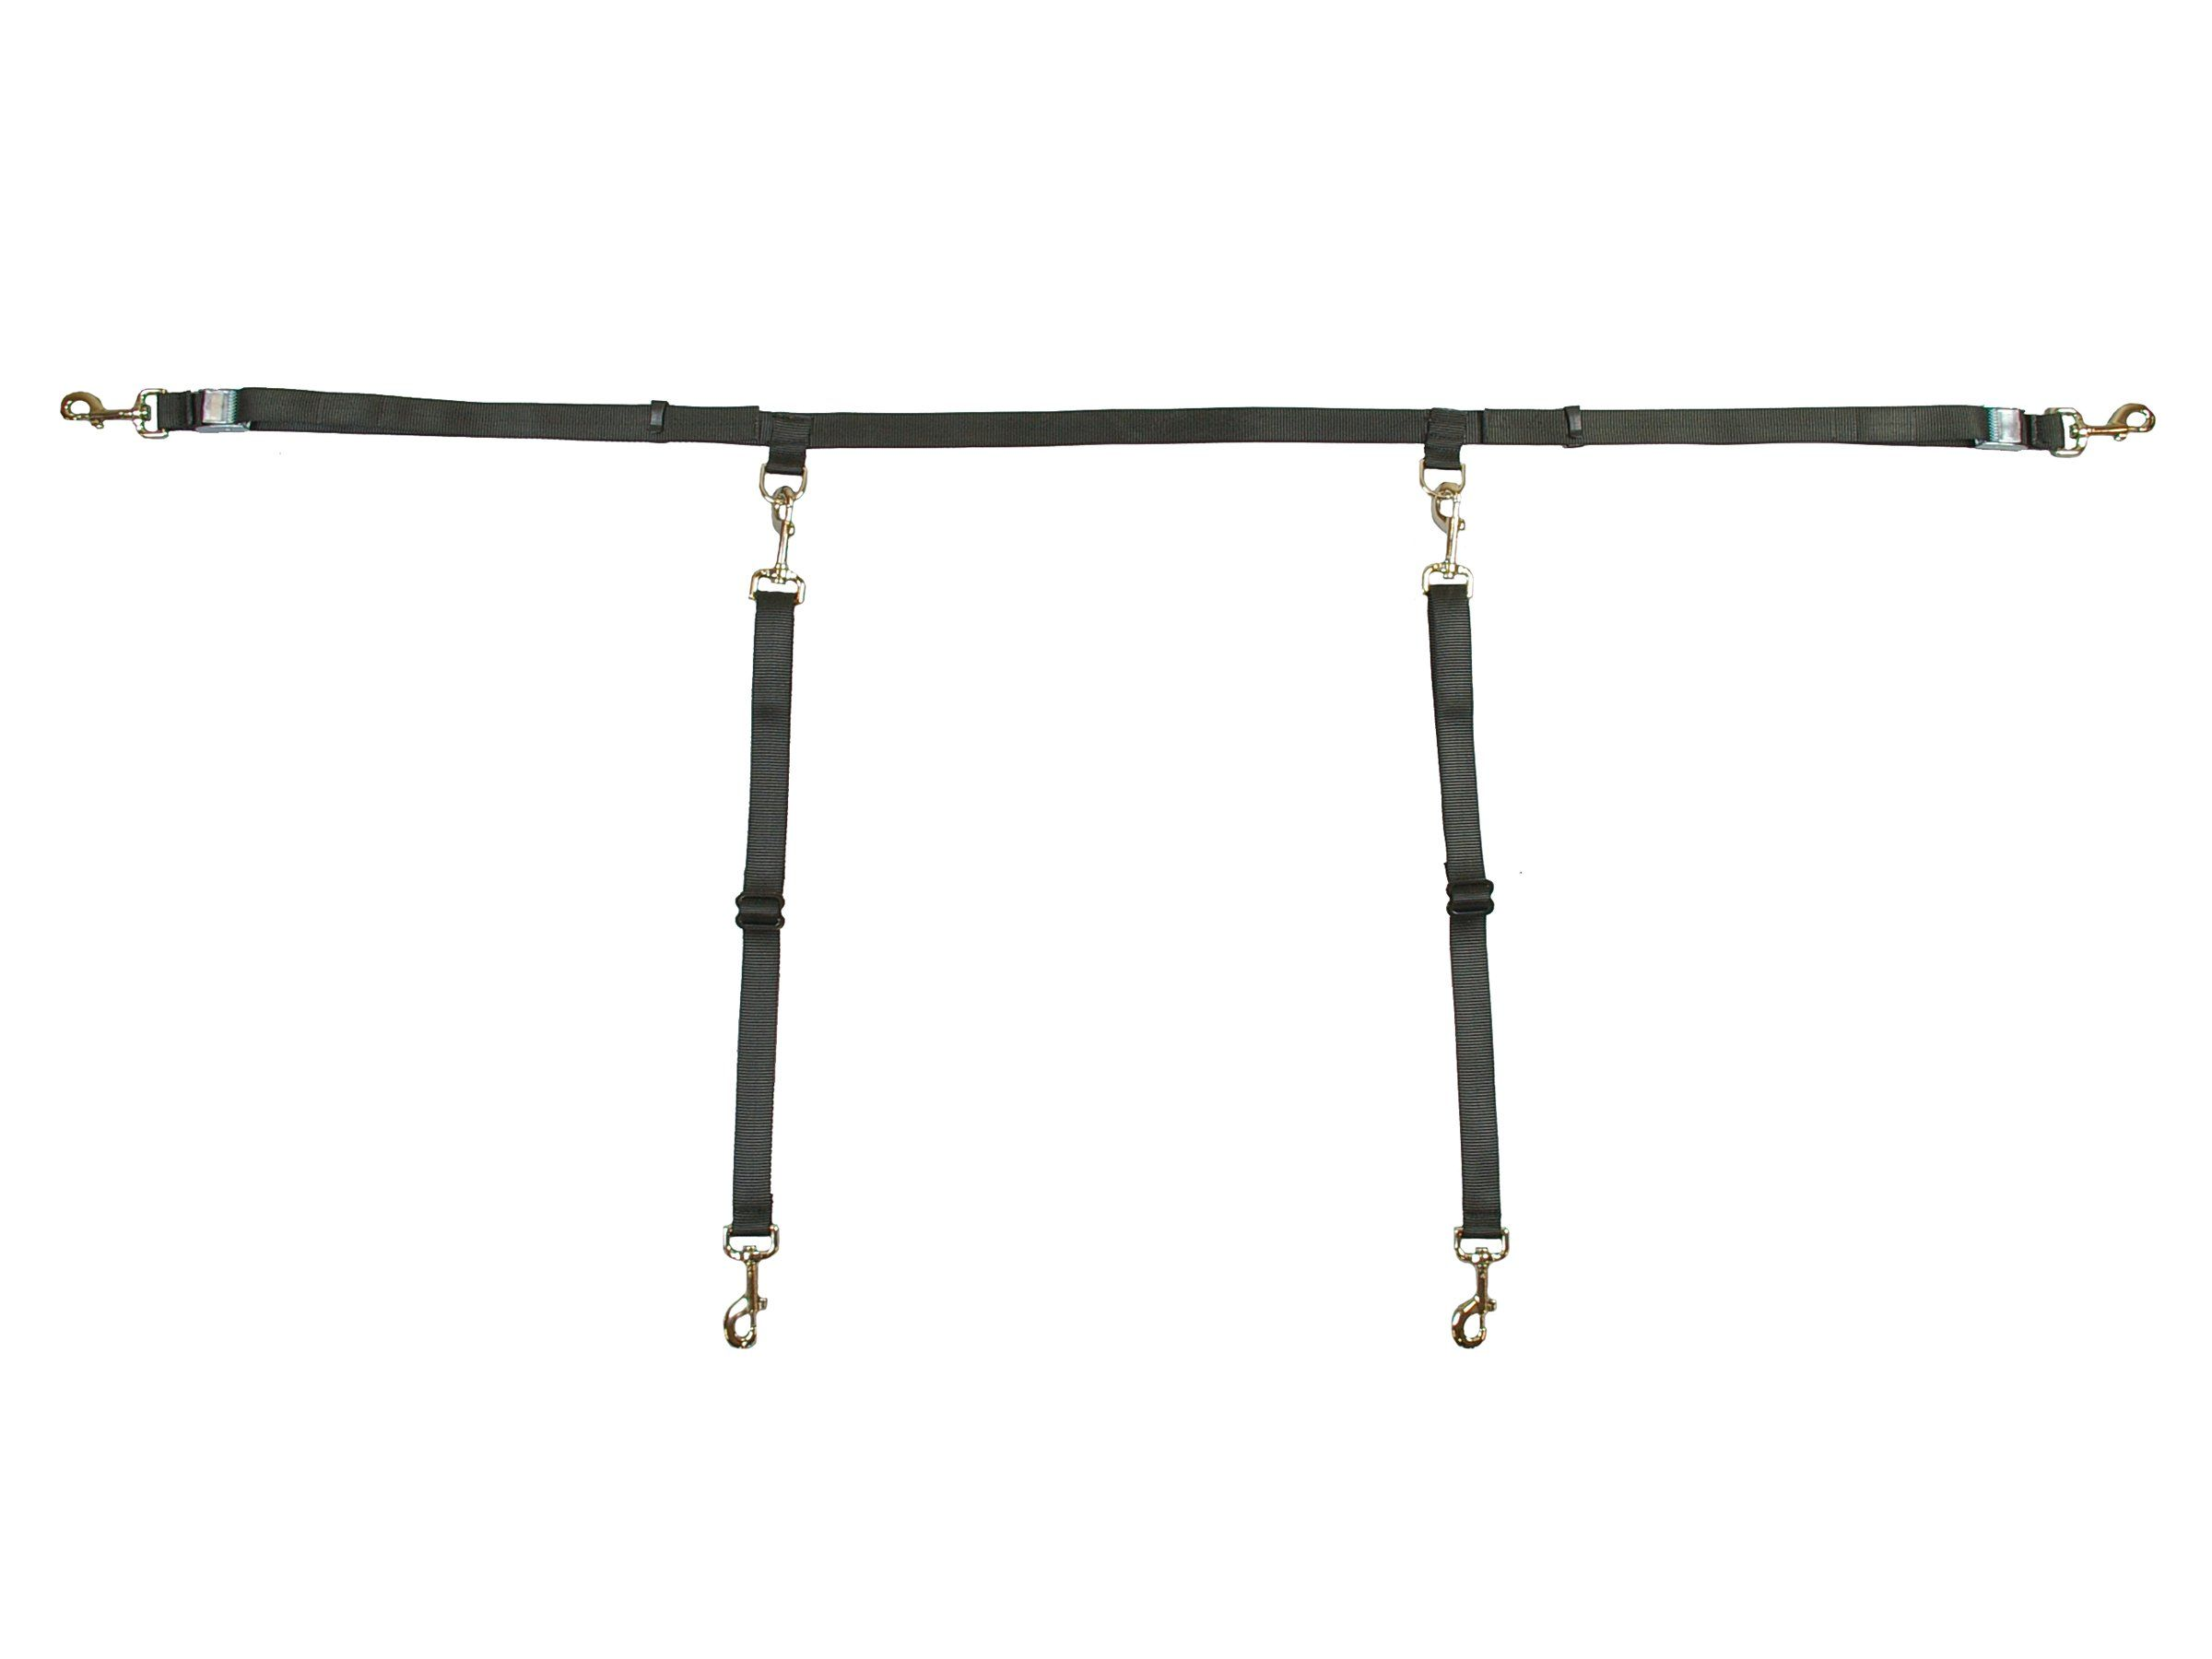 Bushwhacker paws n claws two dog truck bed cross tether